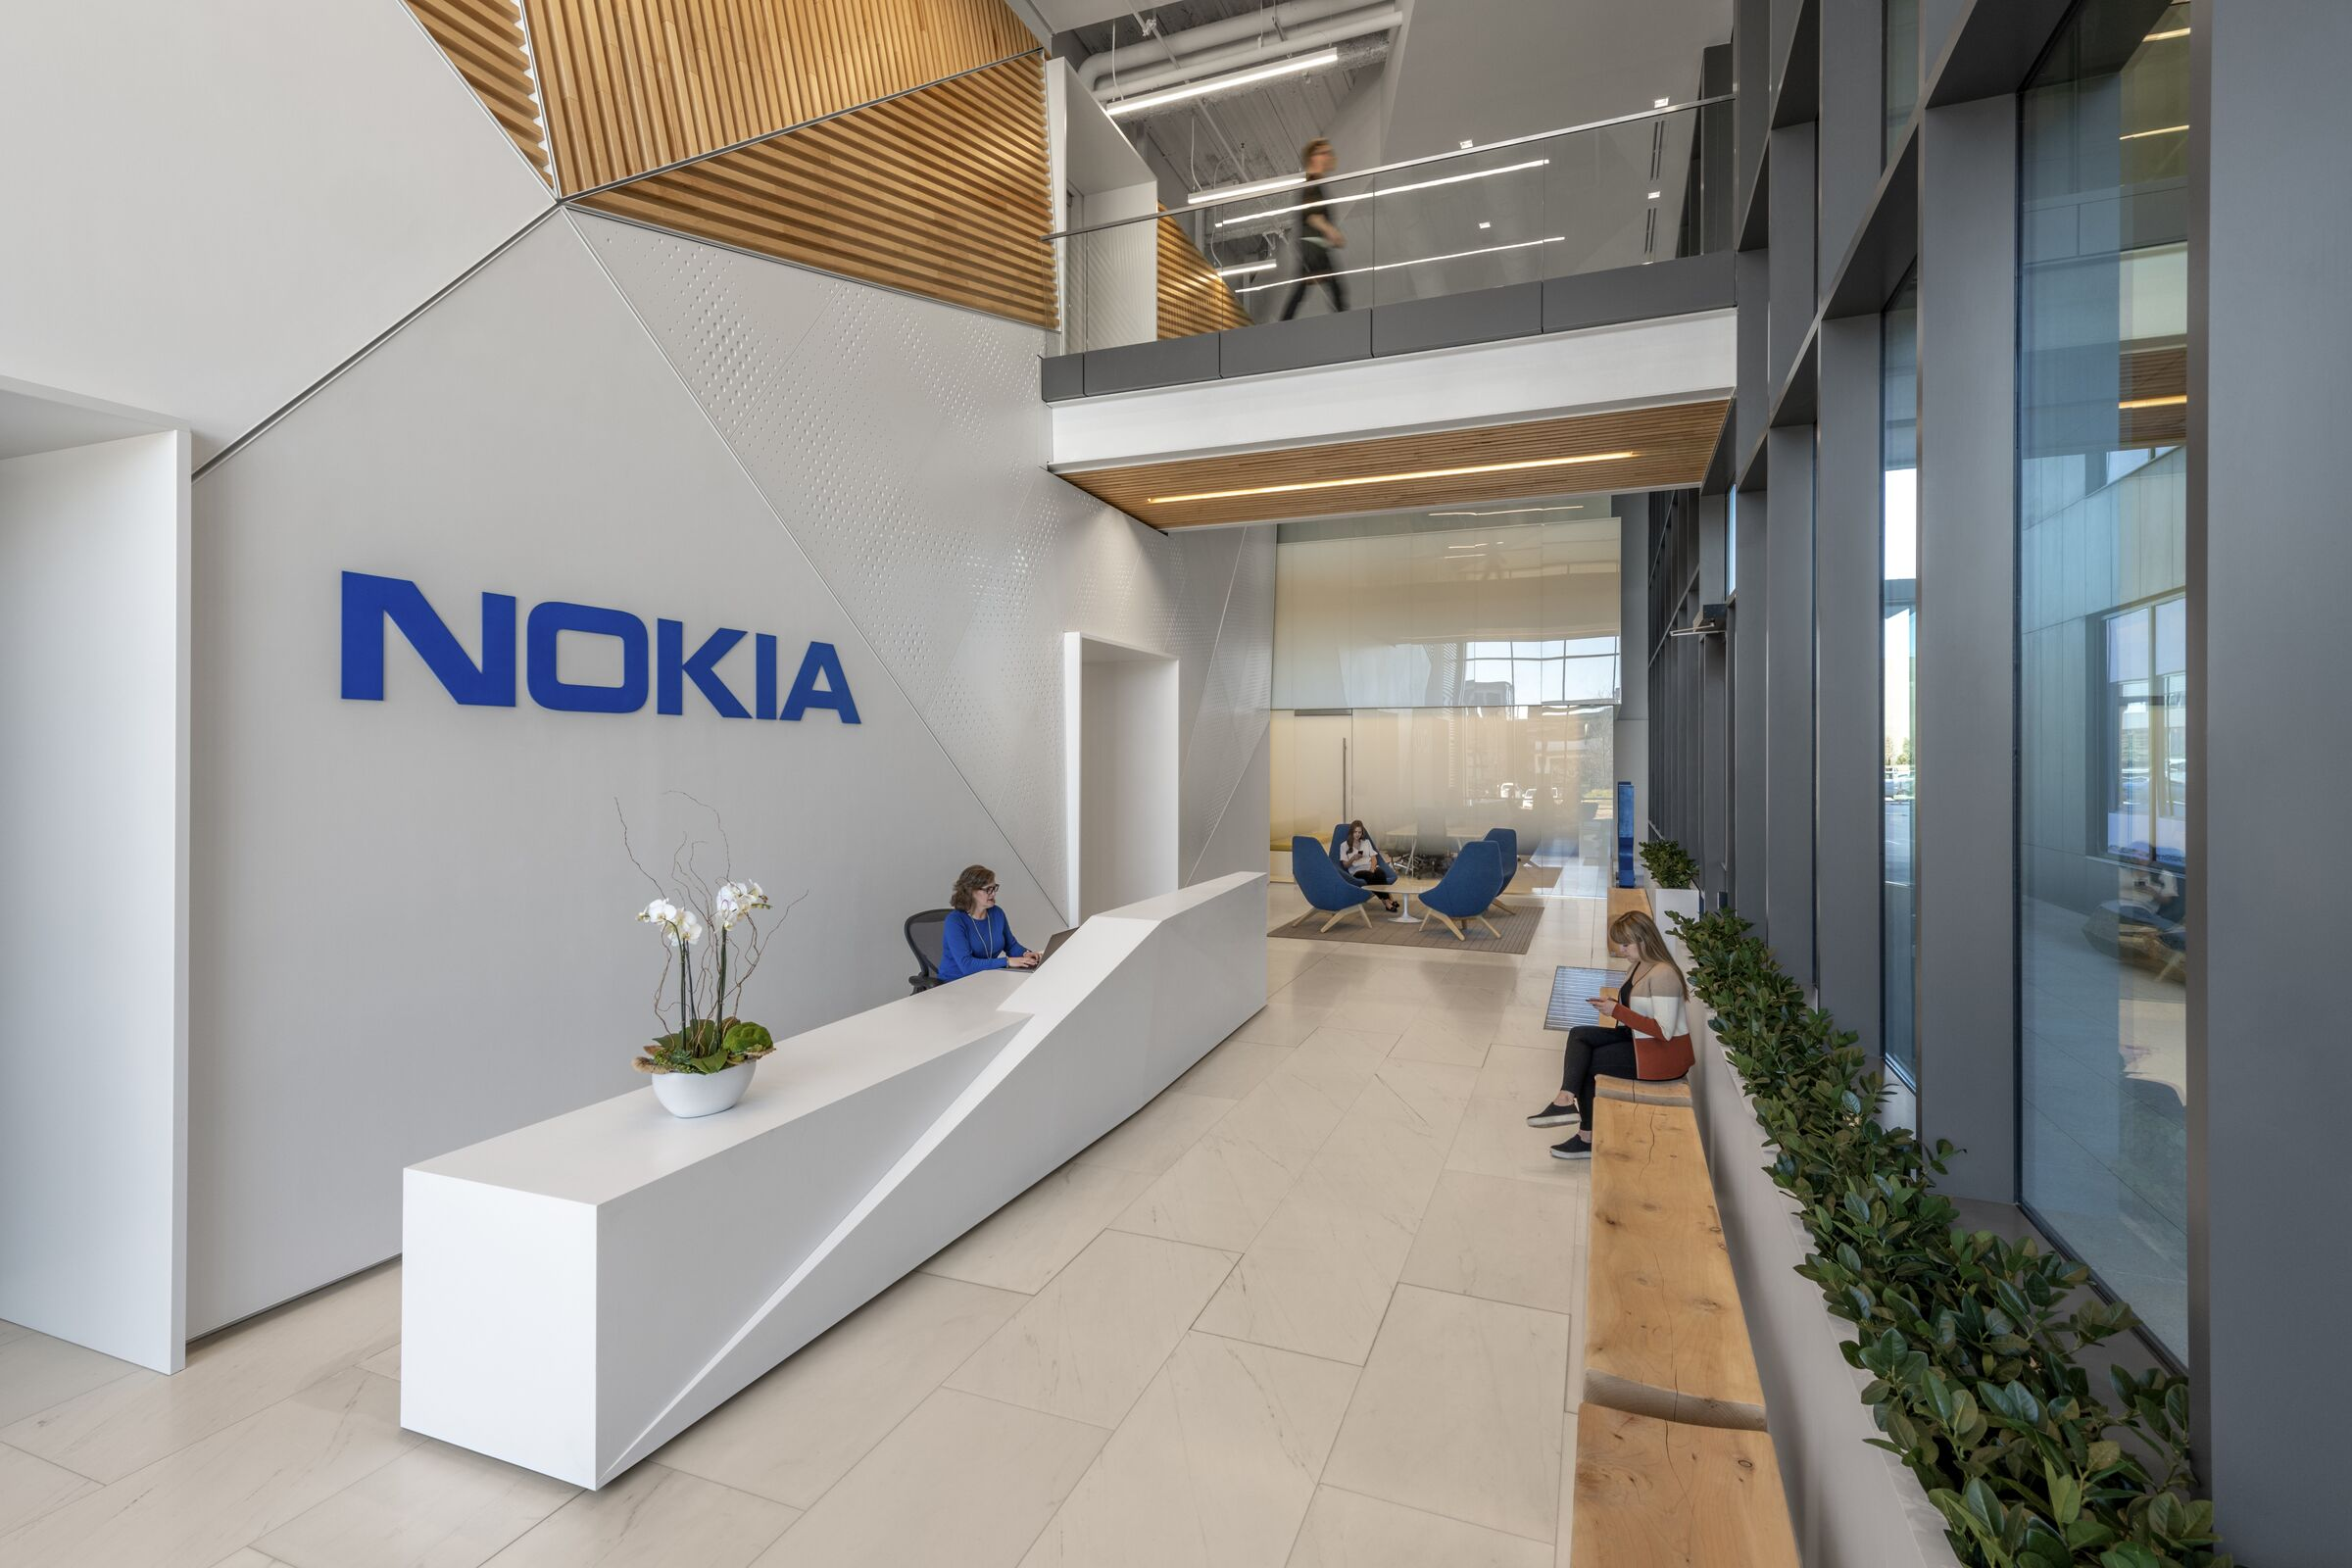 Nokia (NOK) Stock Finally Gets Out of Flat Moves